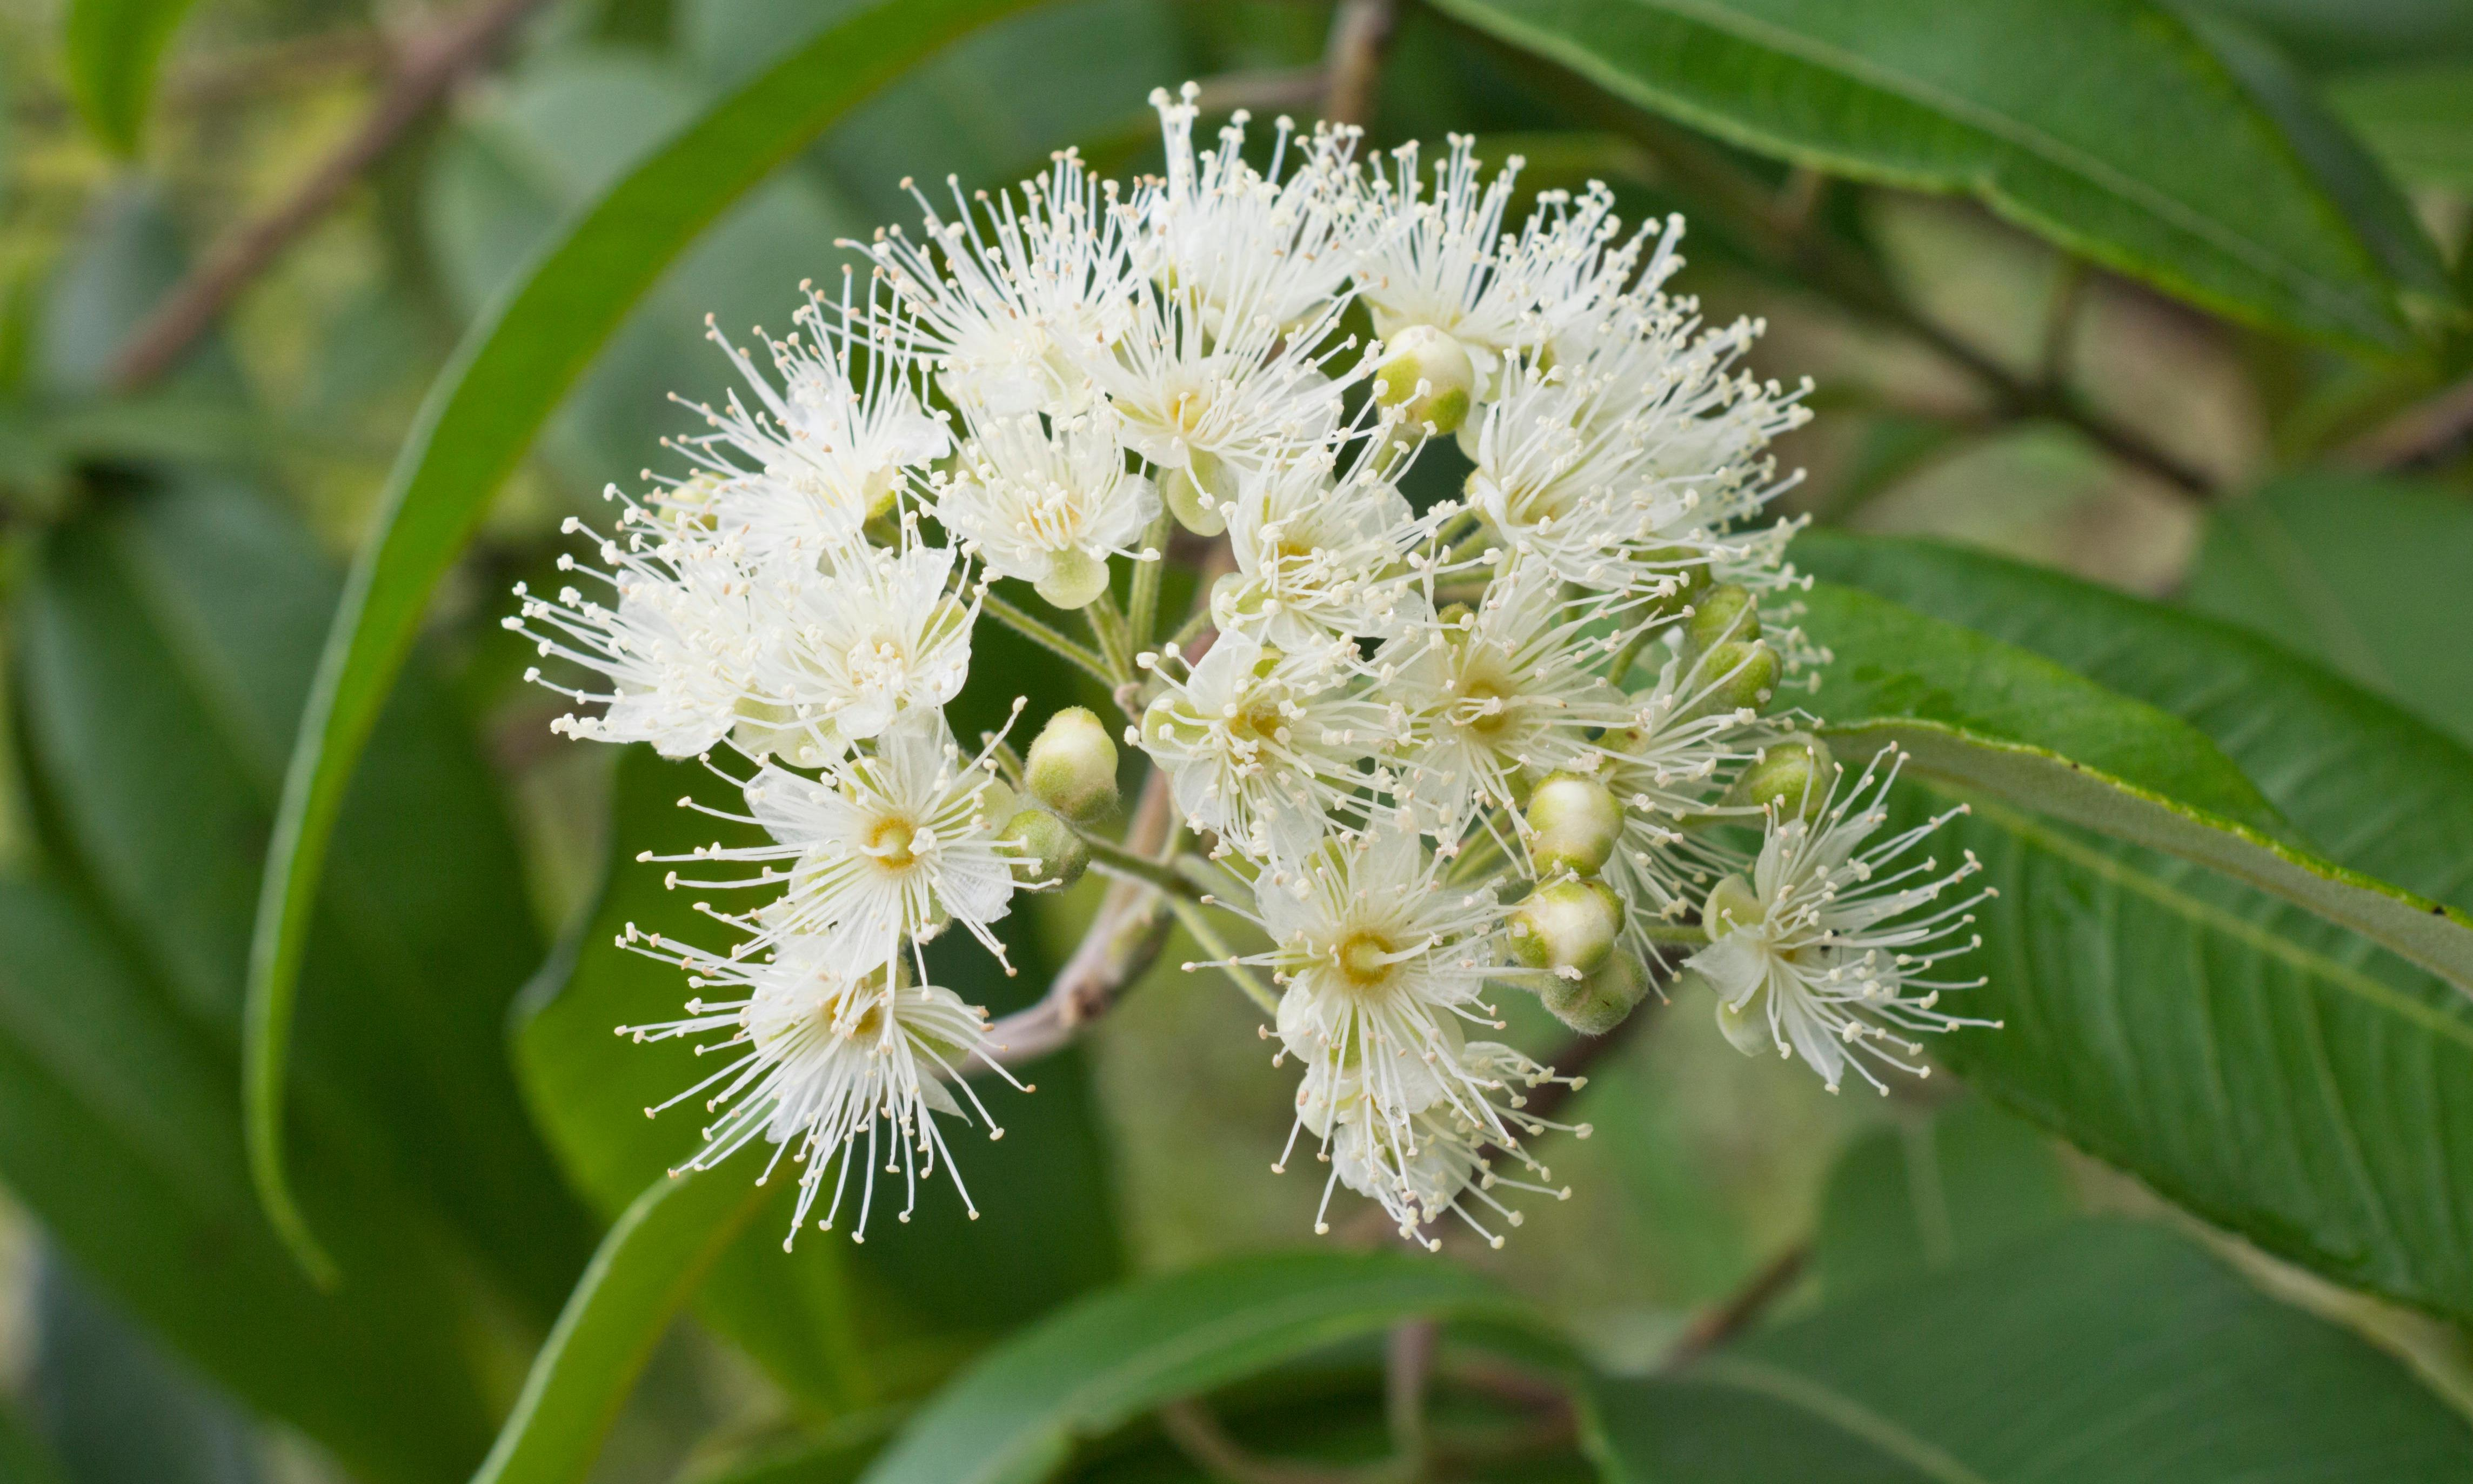 Super flower: lemon myrtle can clean, cook and makes great marshmallows